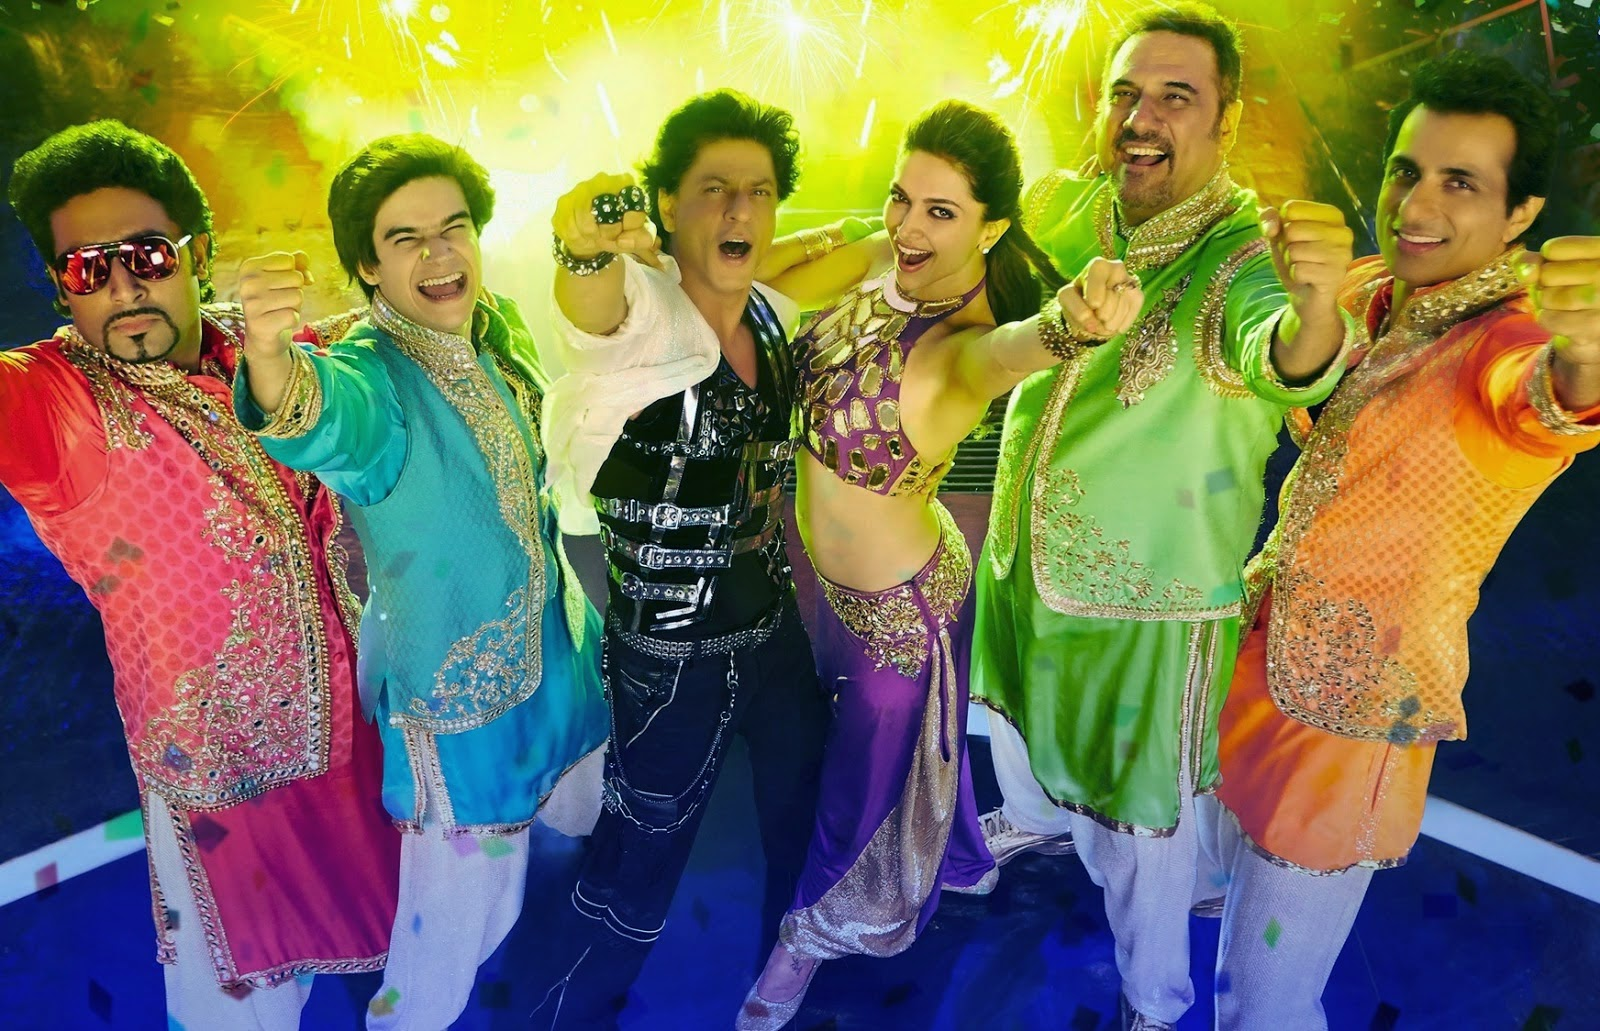 Movie happy new year 2014 poster (Actor and Actress Hd Wallpaper)